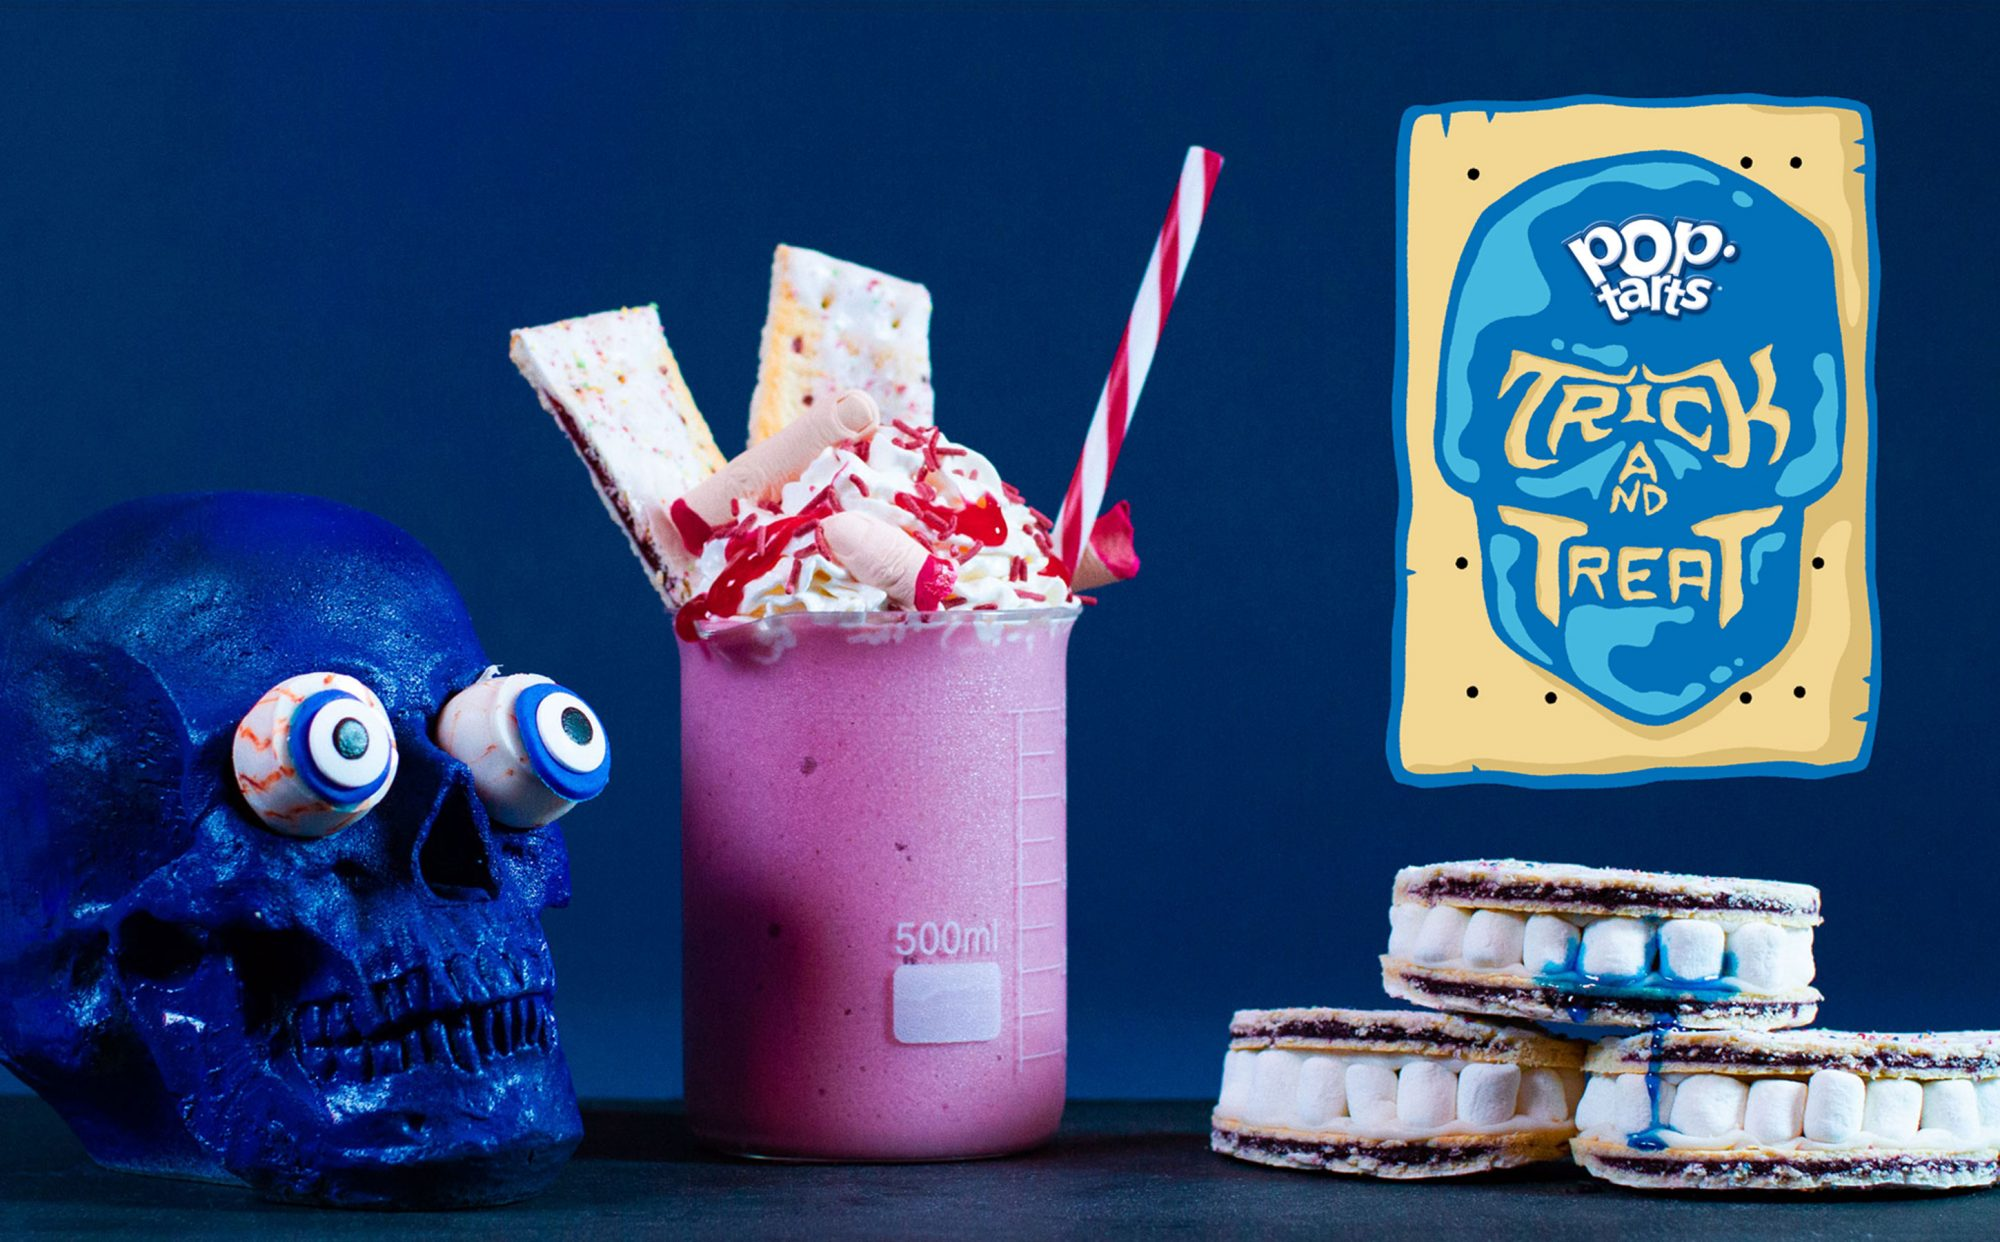 This N.Y.C. Cafe Has a Halloween Menu Where Everything Is Made with Pop-Tarts